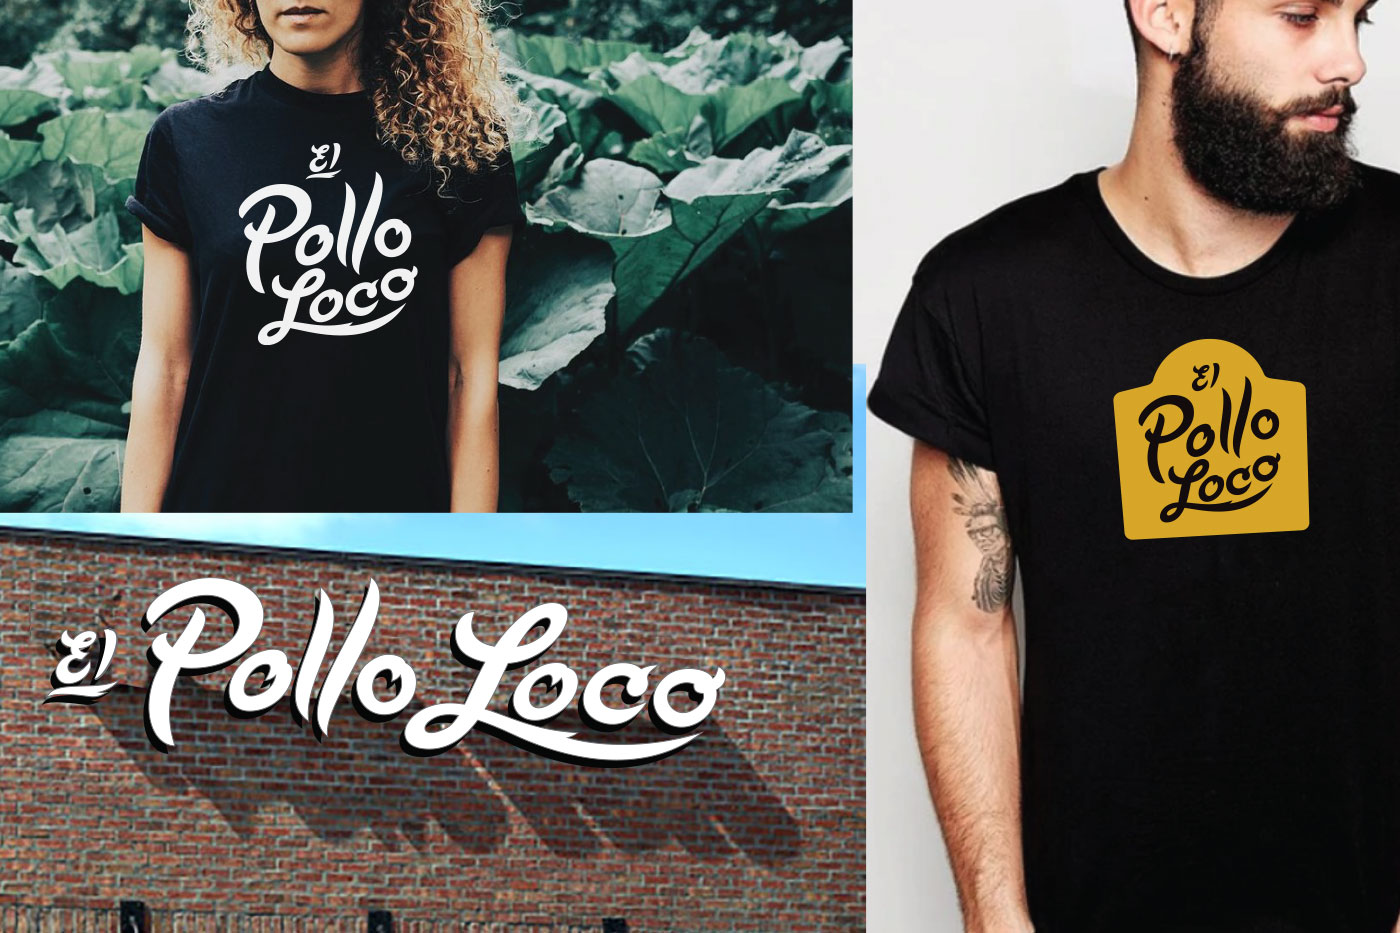 new el pollo loco branding agency